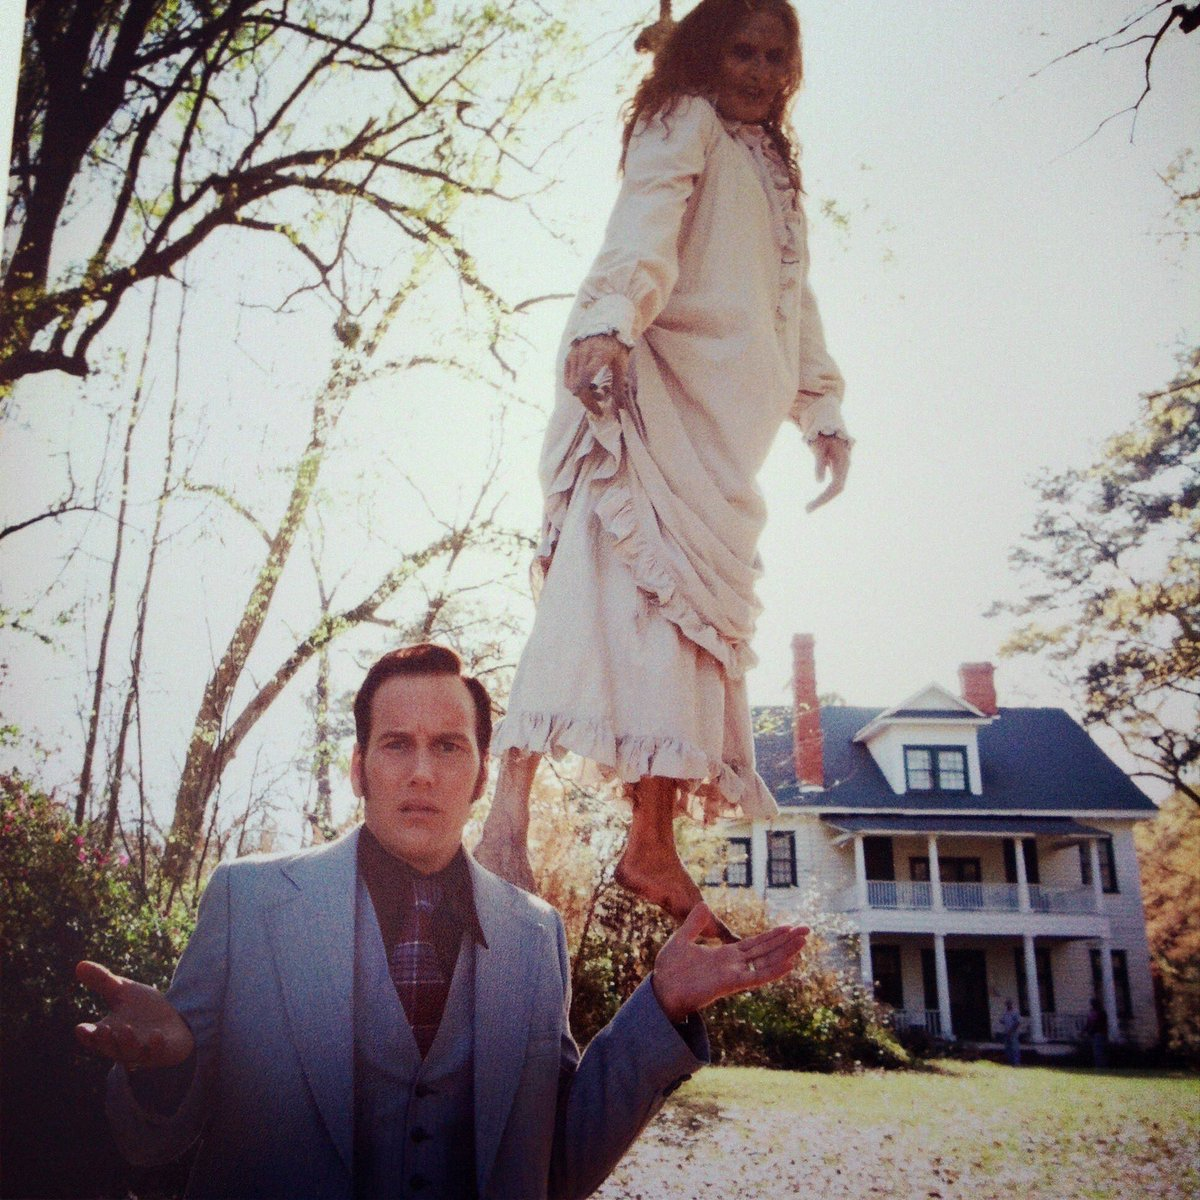 Fear Catalogue On Twitter The Conjuring 2013 Patrick Wilson Messing Around Behind The Scenes